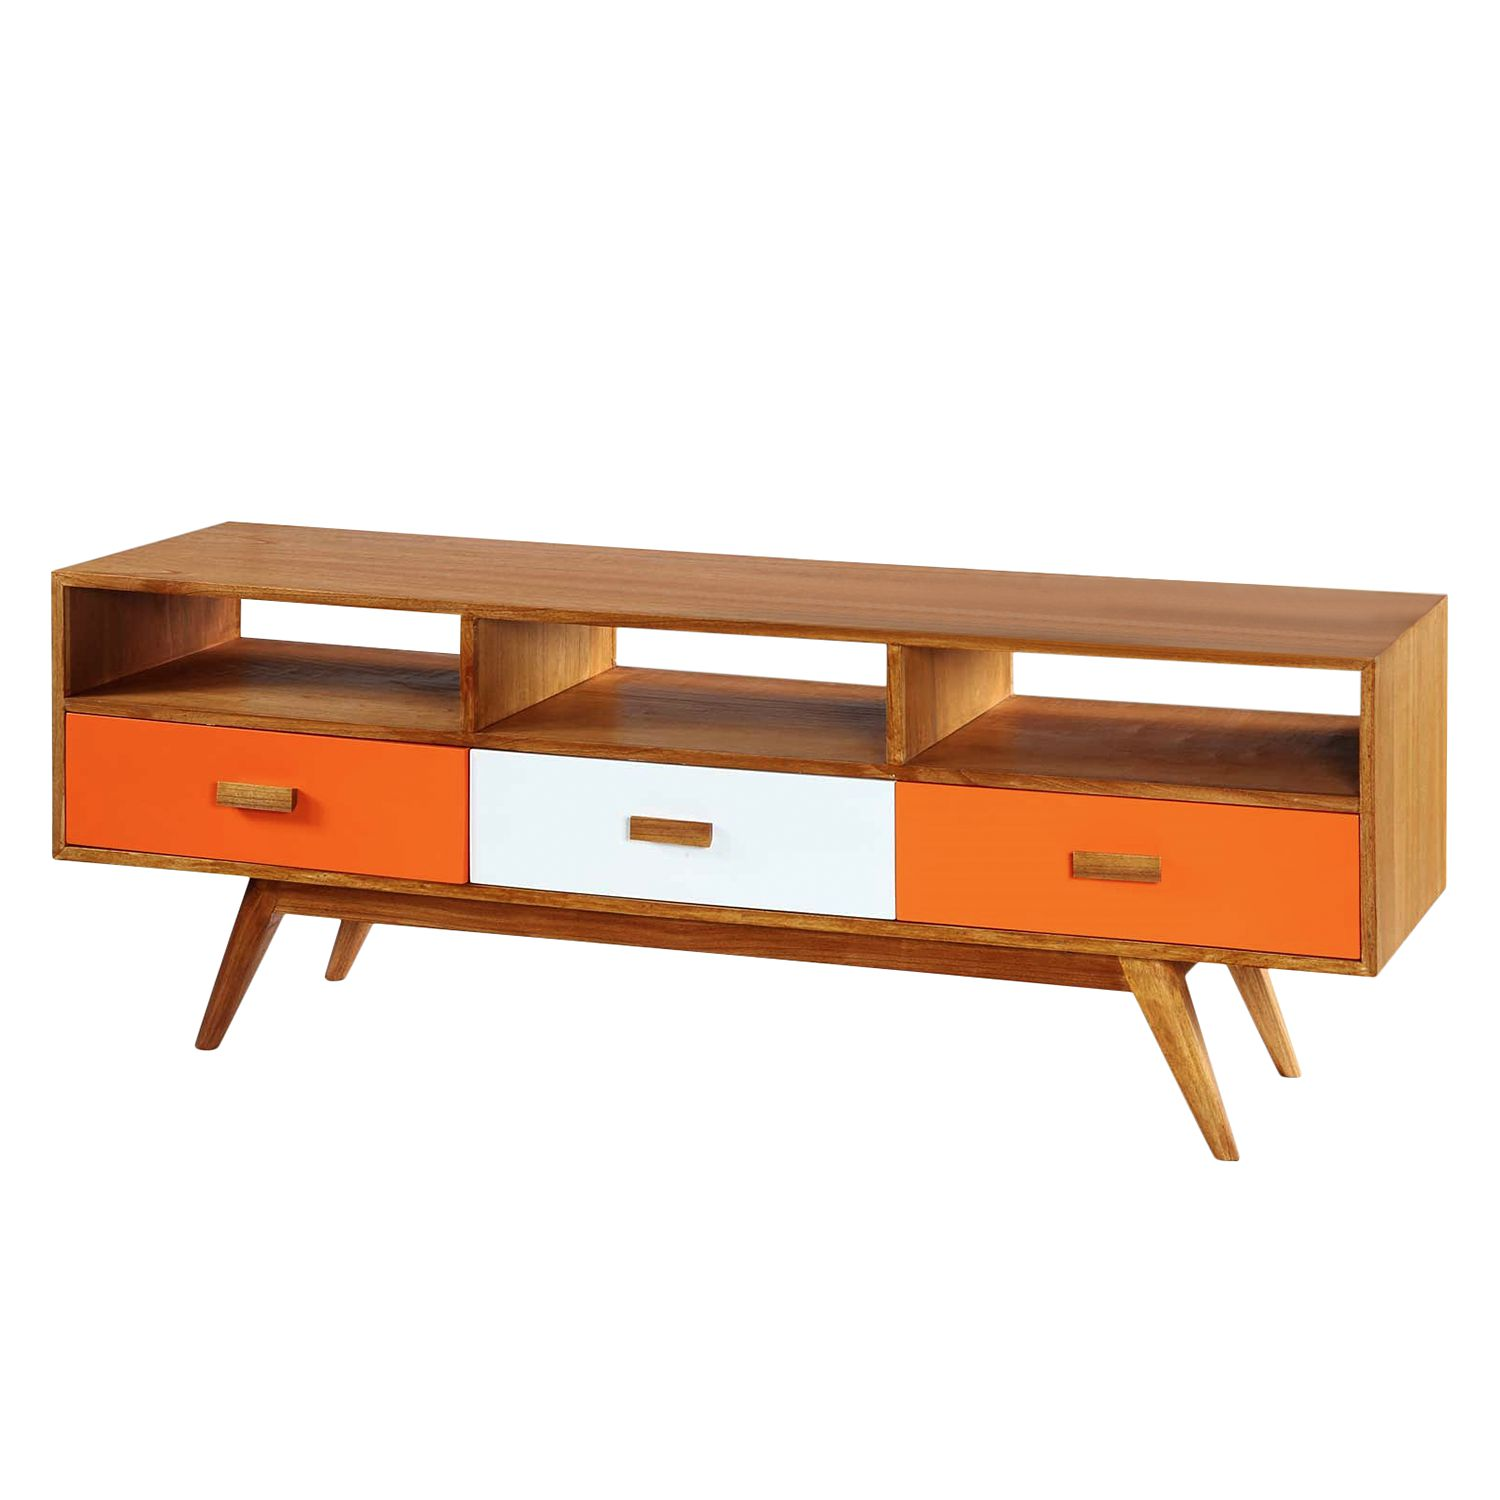 Mia Casa Sideboard Passion for Retro III - Mindi massiv, Mia Casa